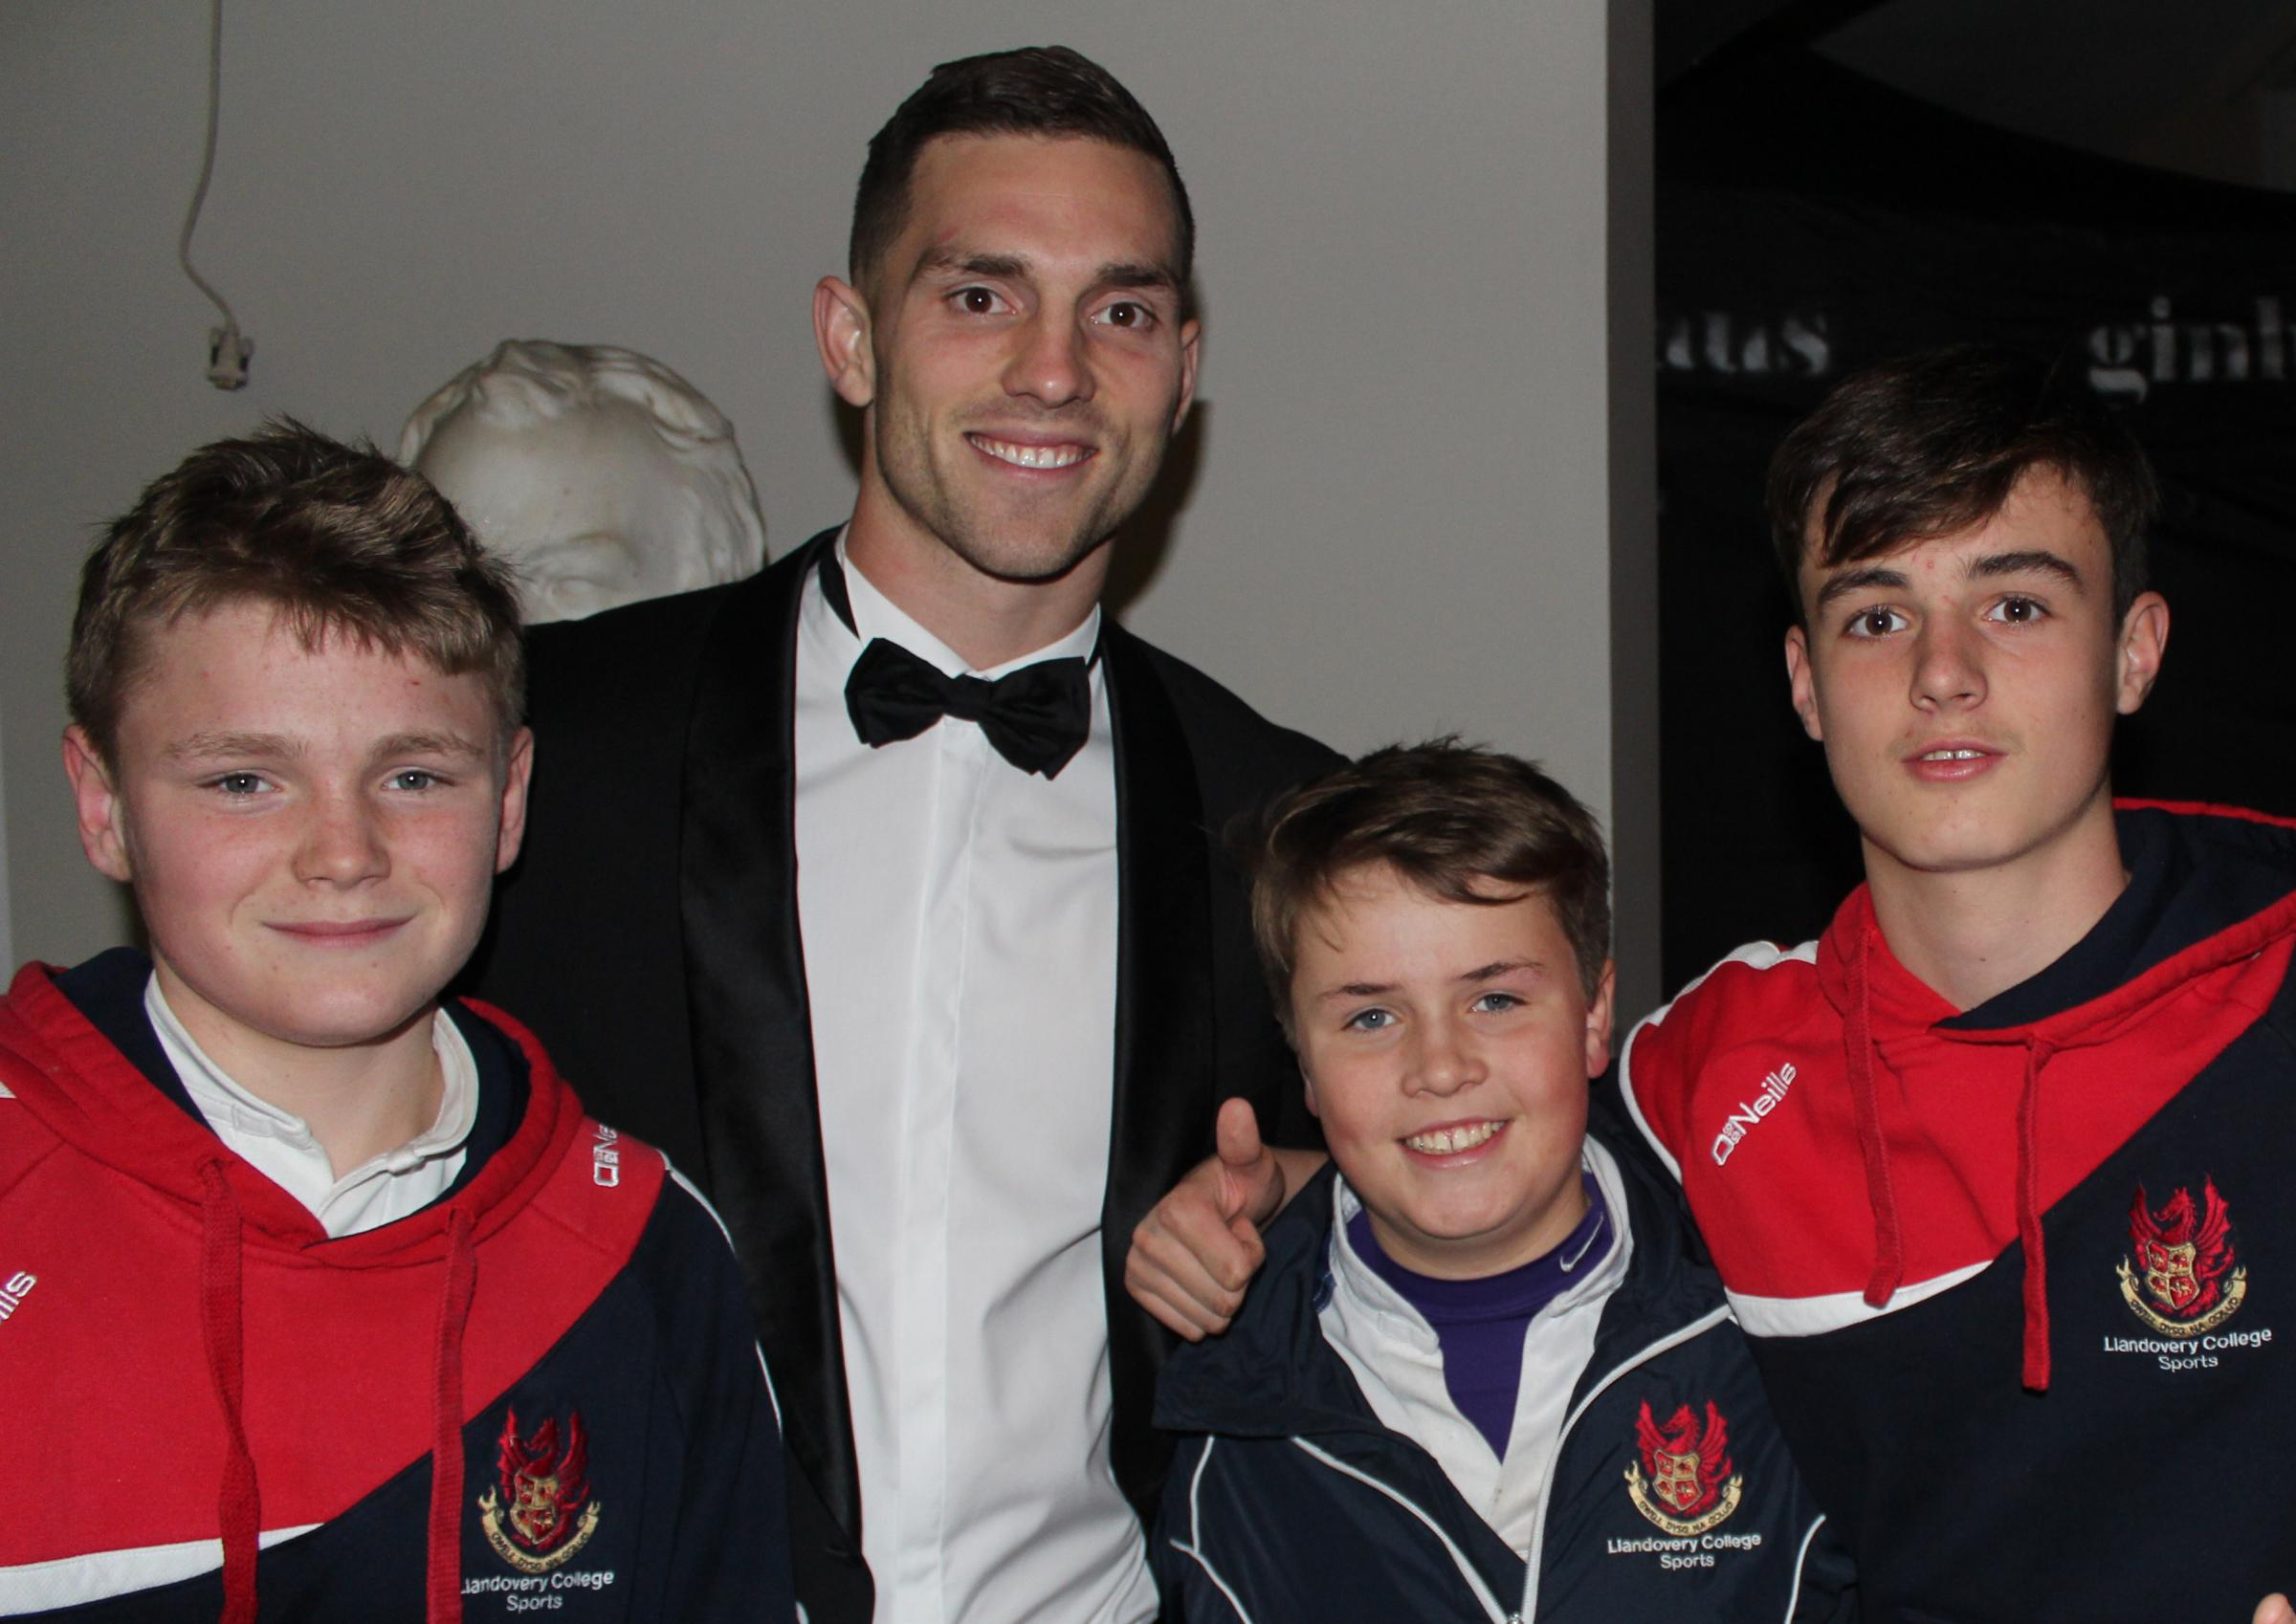 George North joins current pupils in celebrating the 170th anniversary of his old school Llandovery College last weekend